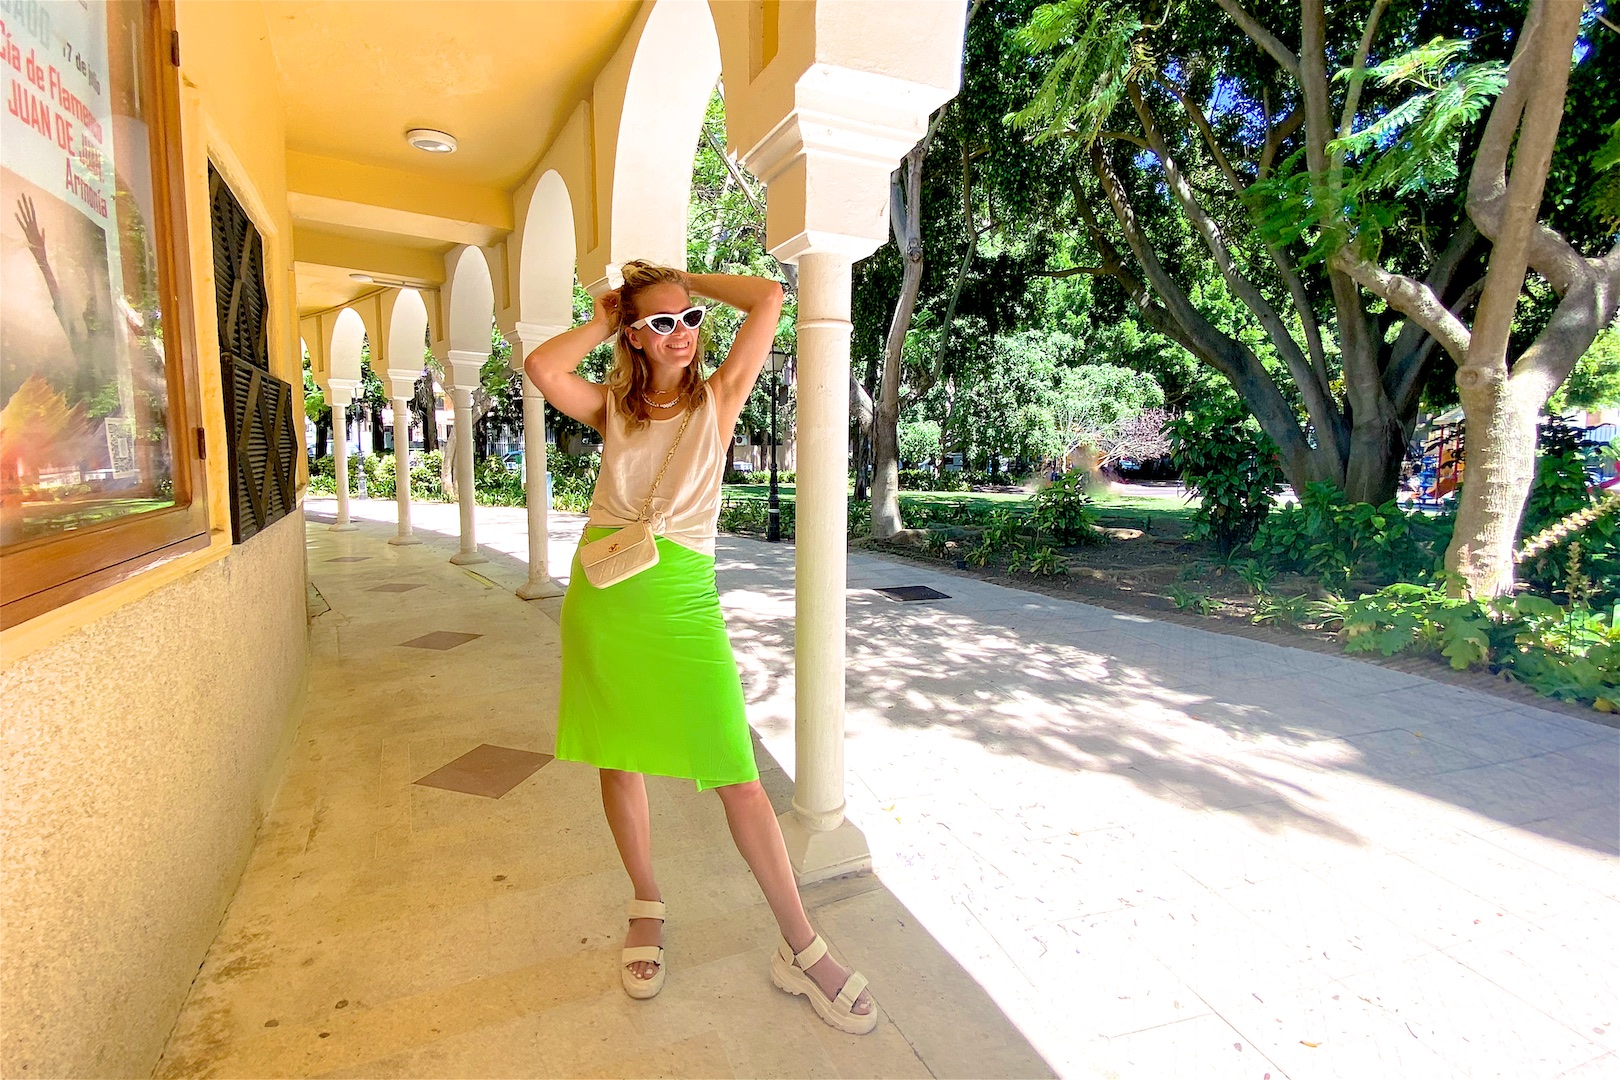 Botanical Garden. Fashion Blogger Girl by Style Blog Heartfelt Hunt. Girl with blond hair wearing a satin top, neon green pareo, white sunglasses, vintage chanel bag and chunky sandals.